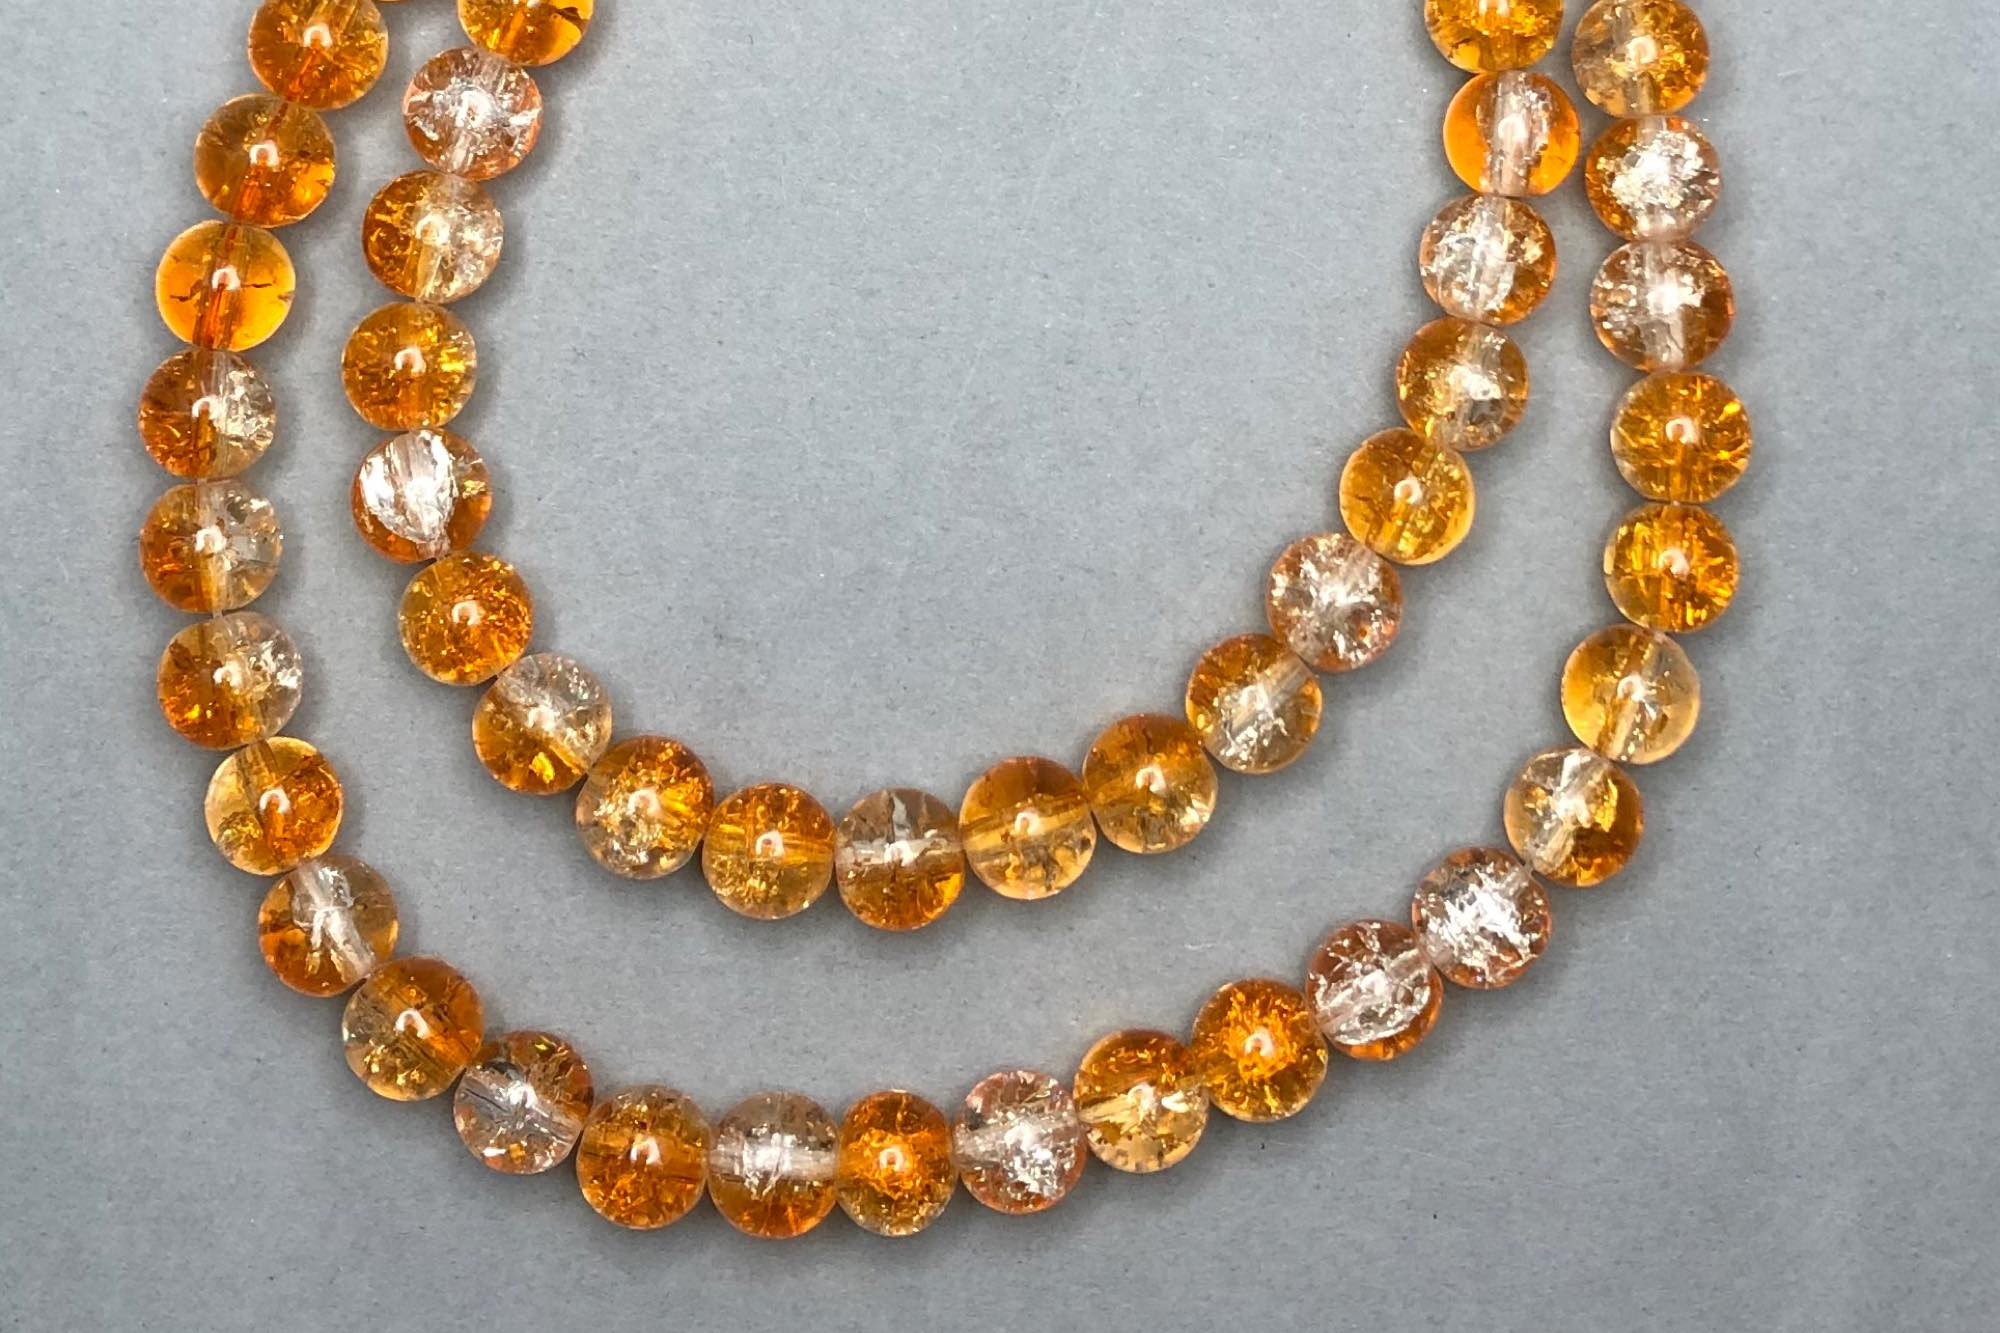 Orange/Clear Crackle Glass Beads